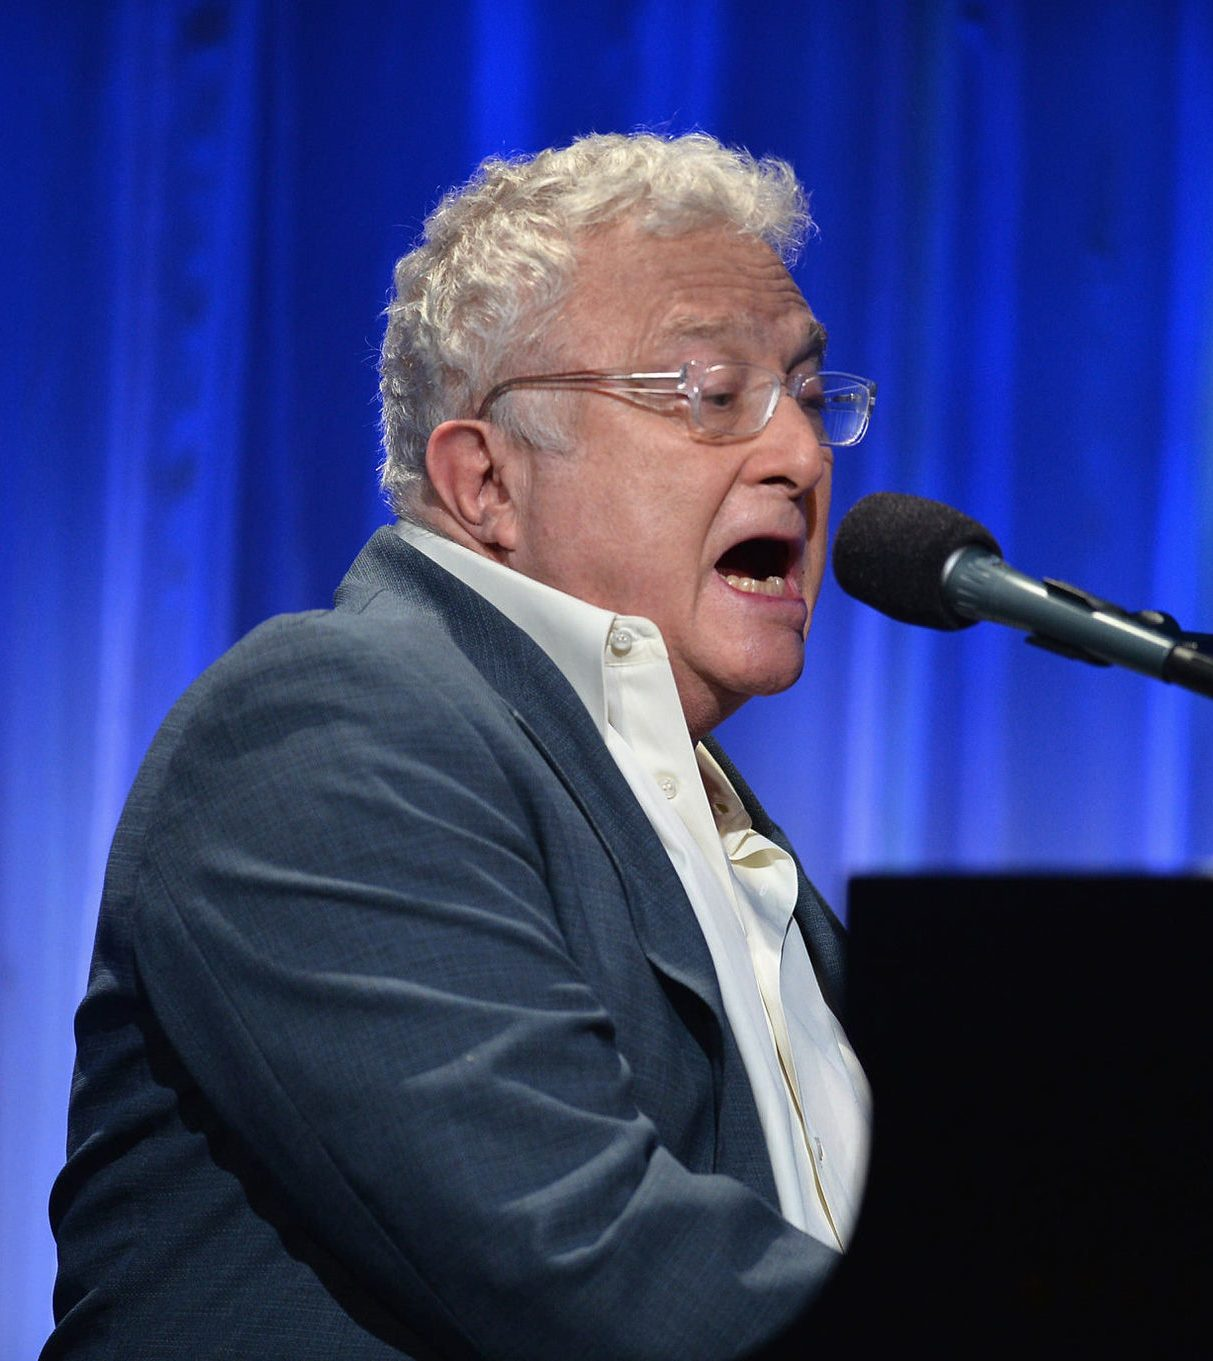 mc randy newman toy story film score writer says he never tried to write hit songs 20141115 e1561540331435 25 Years Old Today: Here's 30 Things You Never Knew About Toy Story